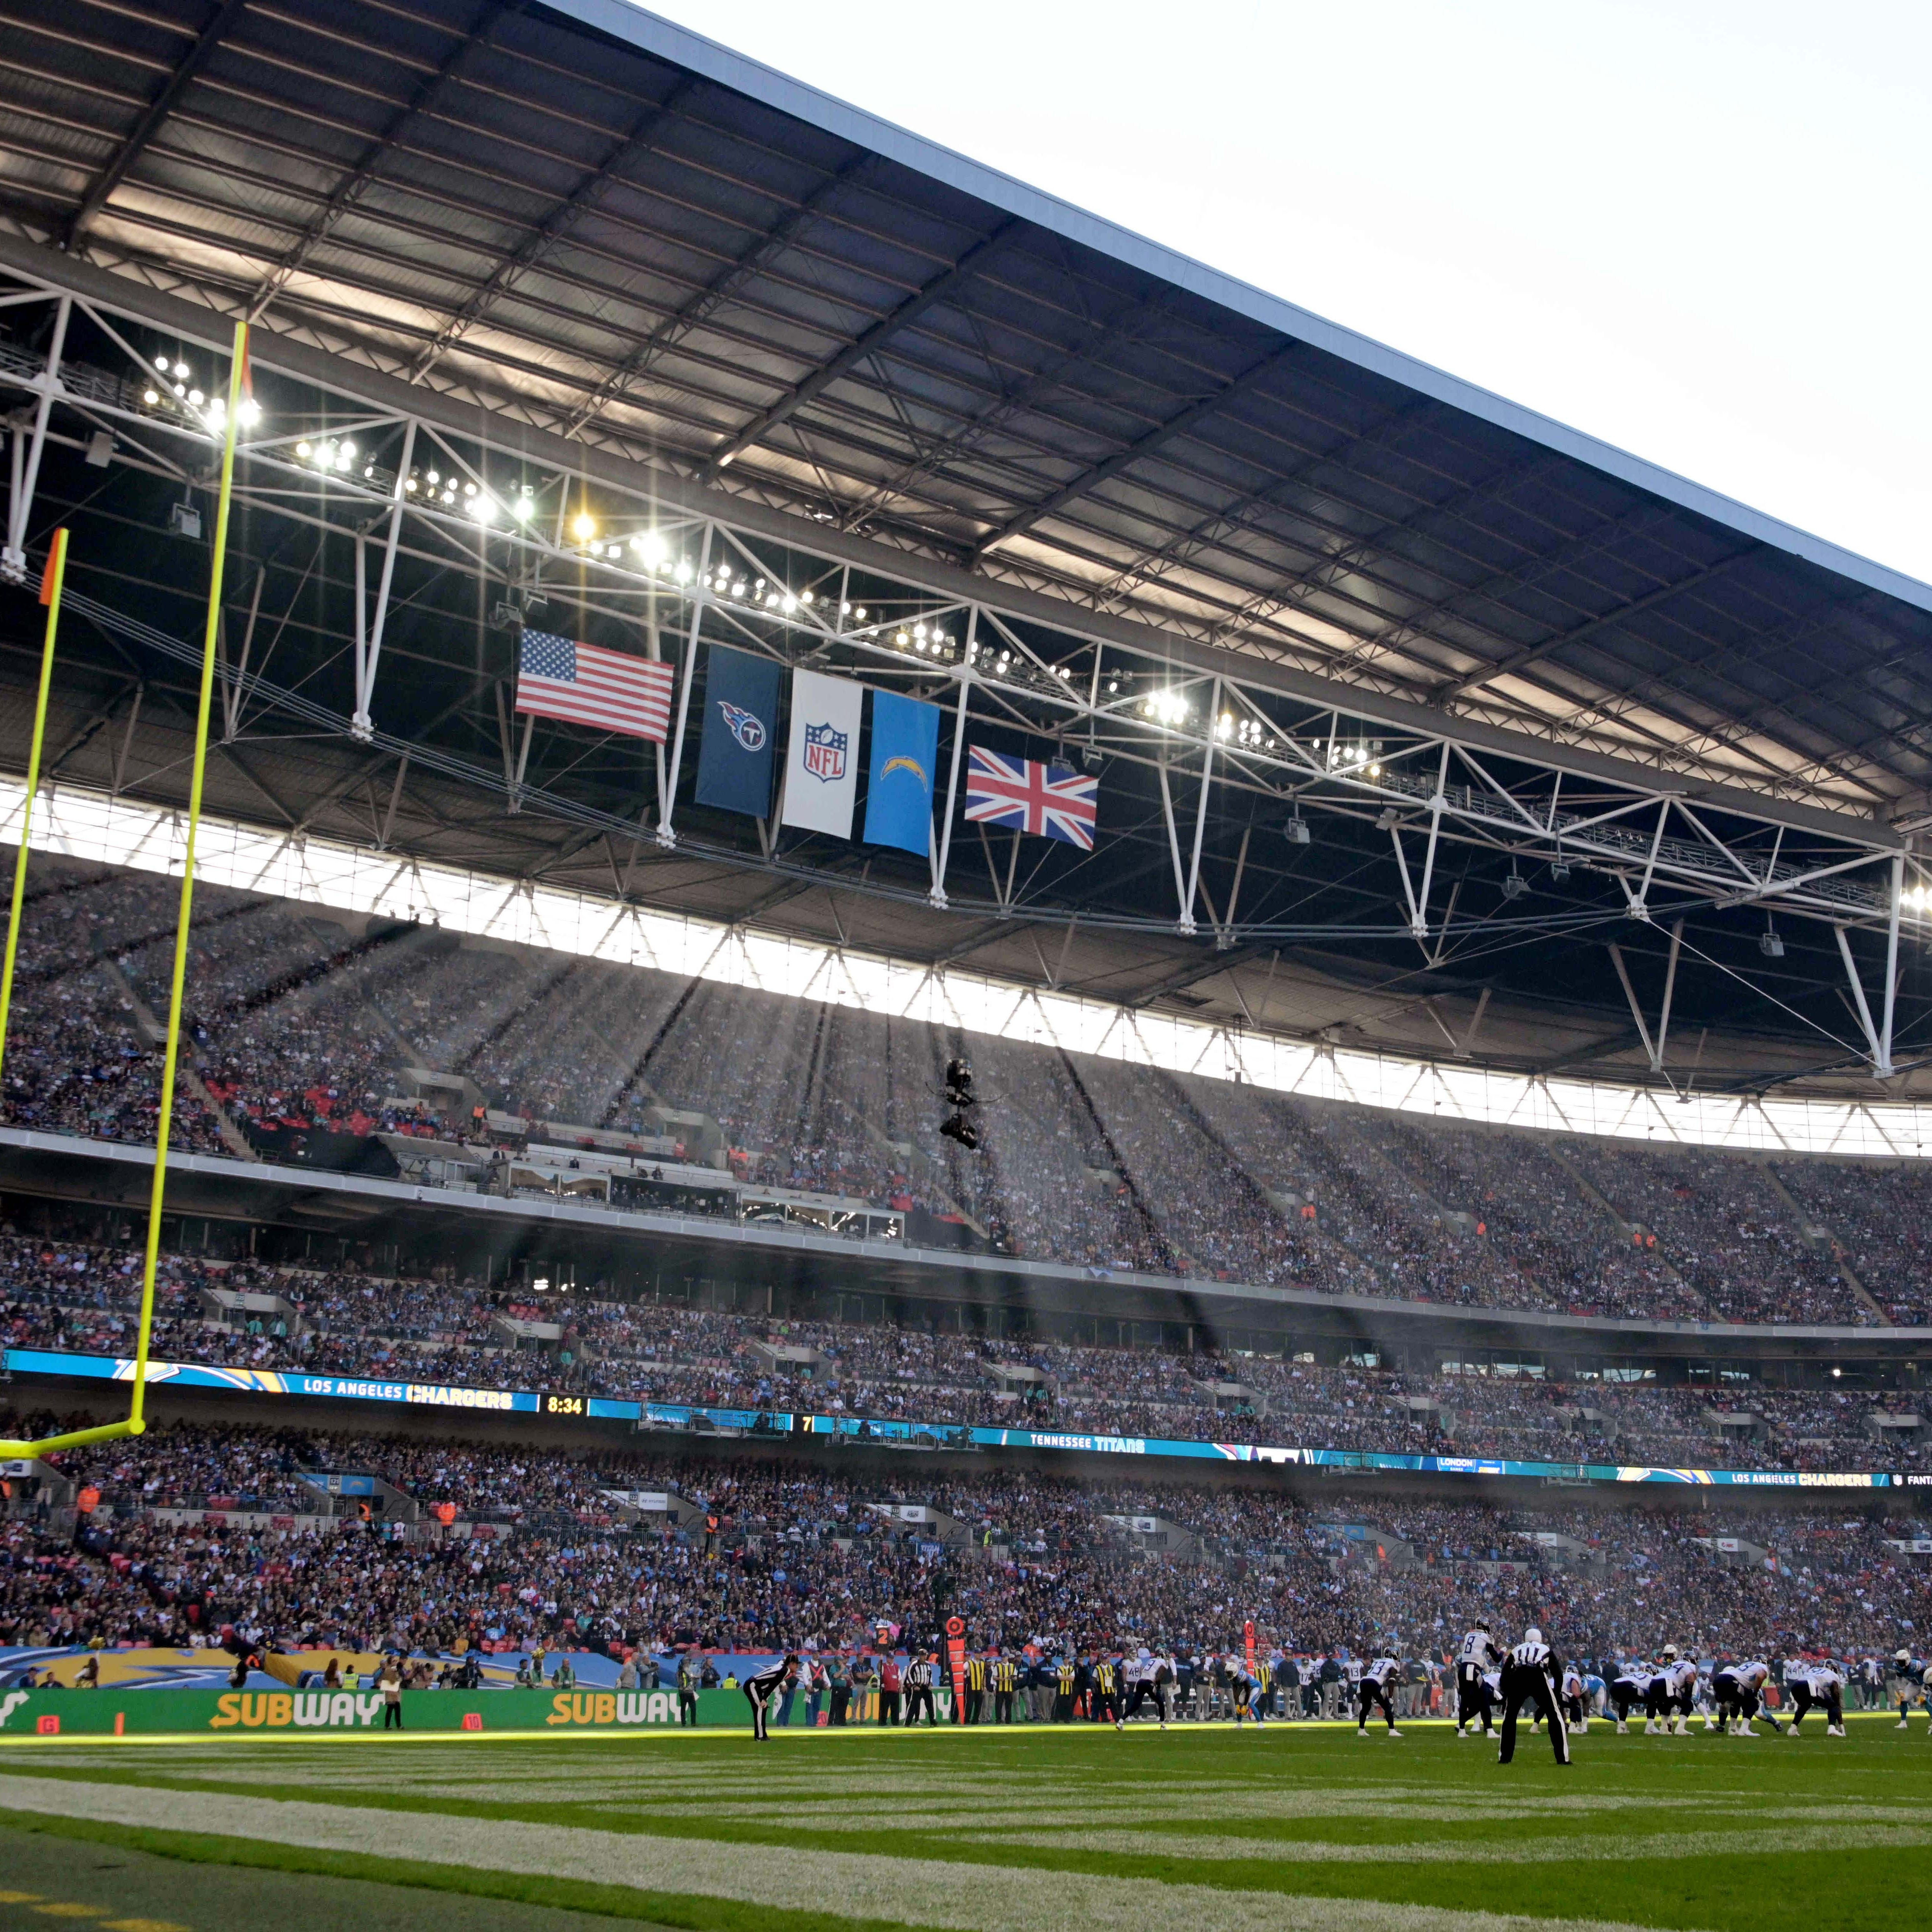 'London Week' features everything the Titans came for, except a win